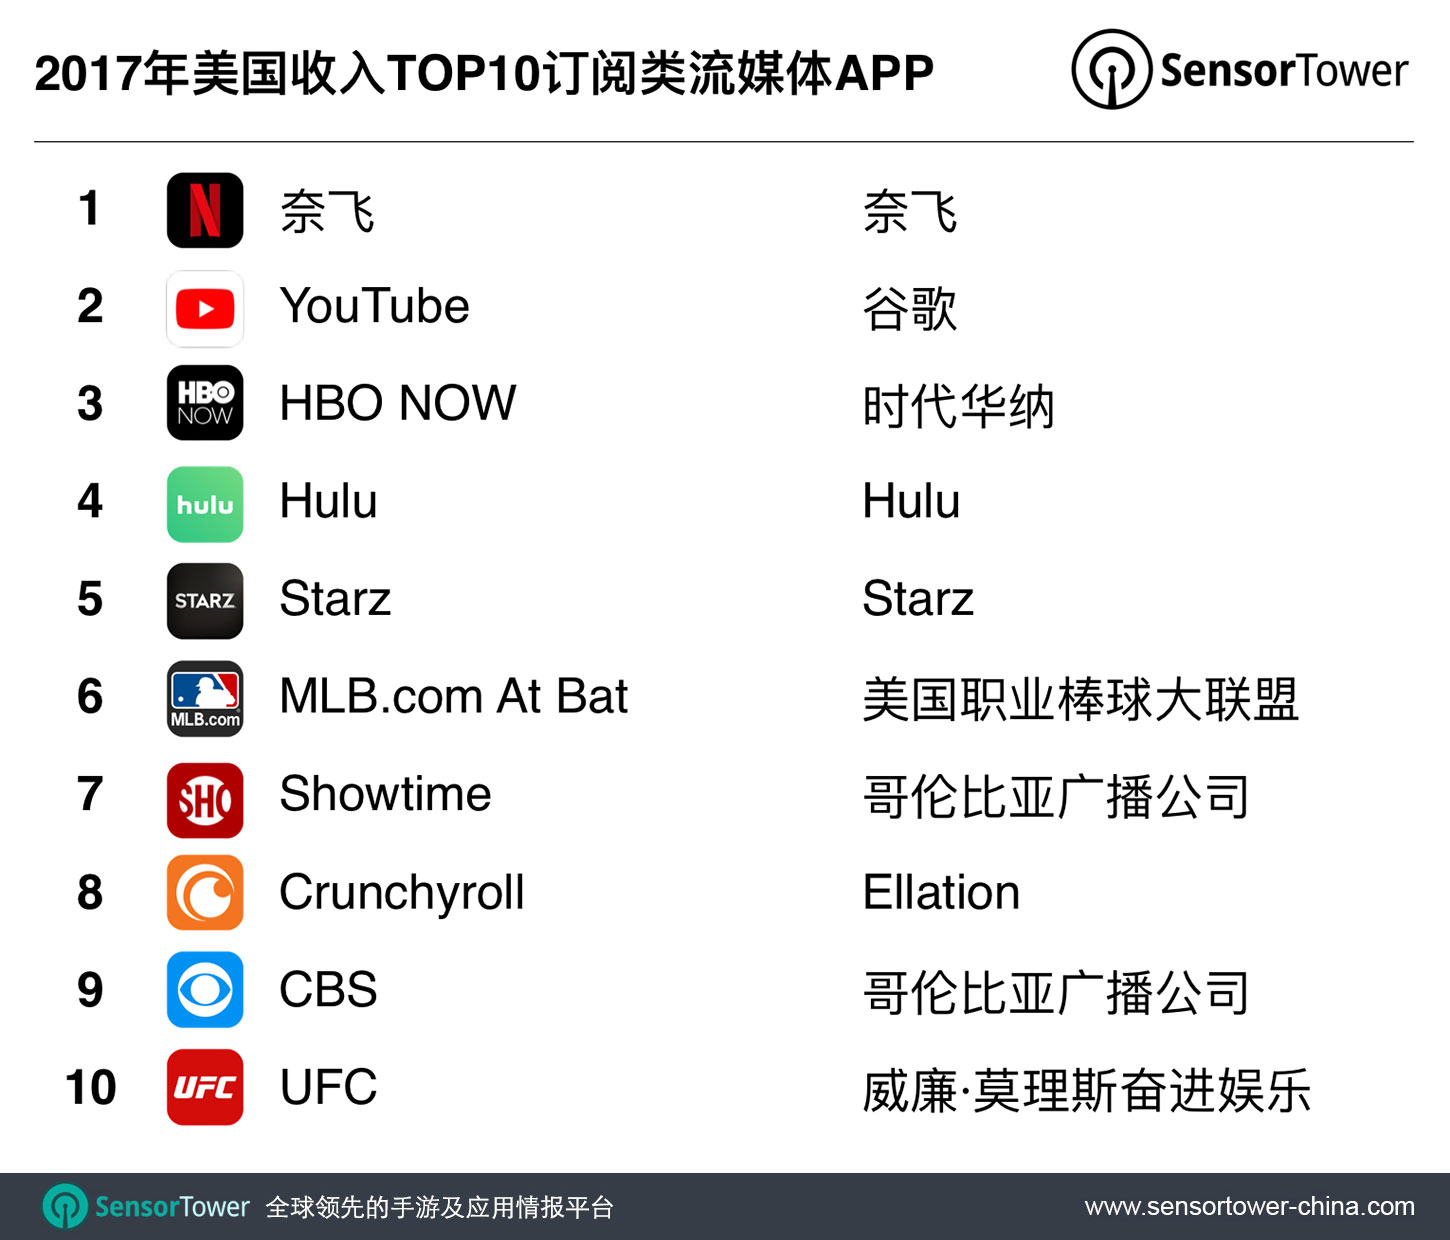 Top 10 U.S. SVOD Apps by Revenue for 2017 CN  - top us svod apps by revenue 2017 cn - 2017年全美TOP10订阅类流媒体APP总体收入同比增长77%